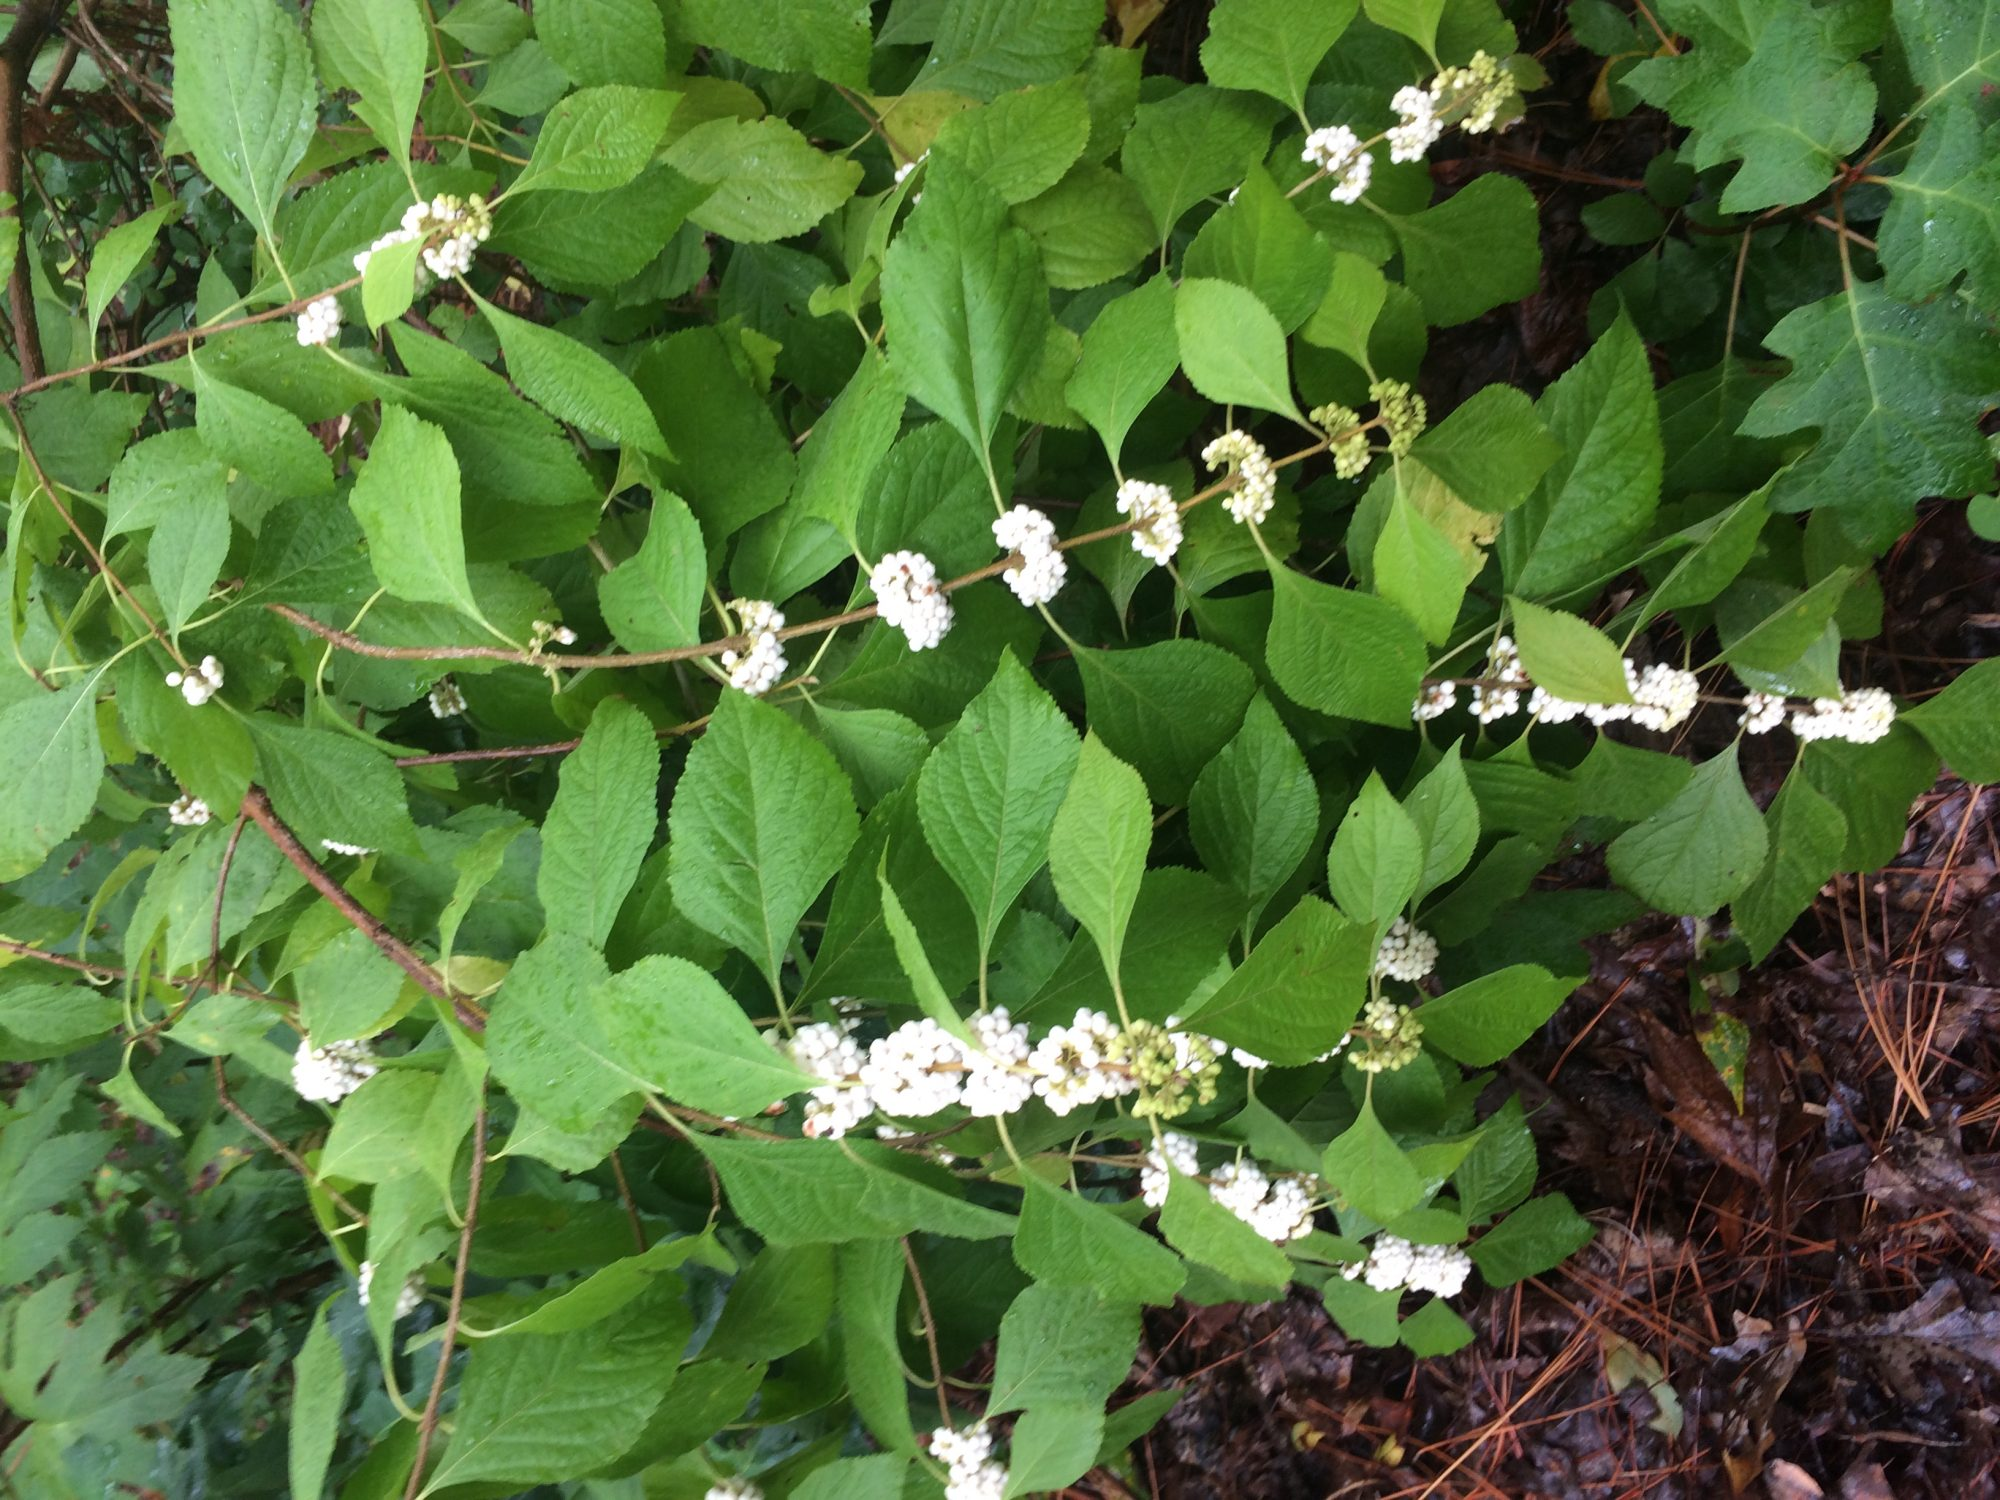 White American beautyberry